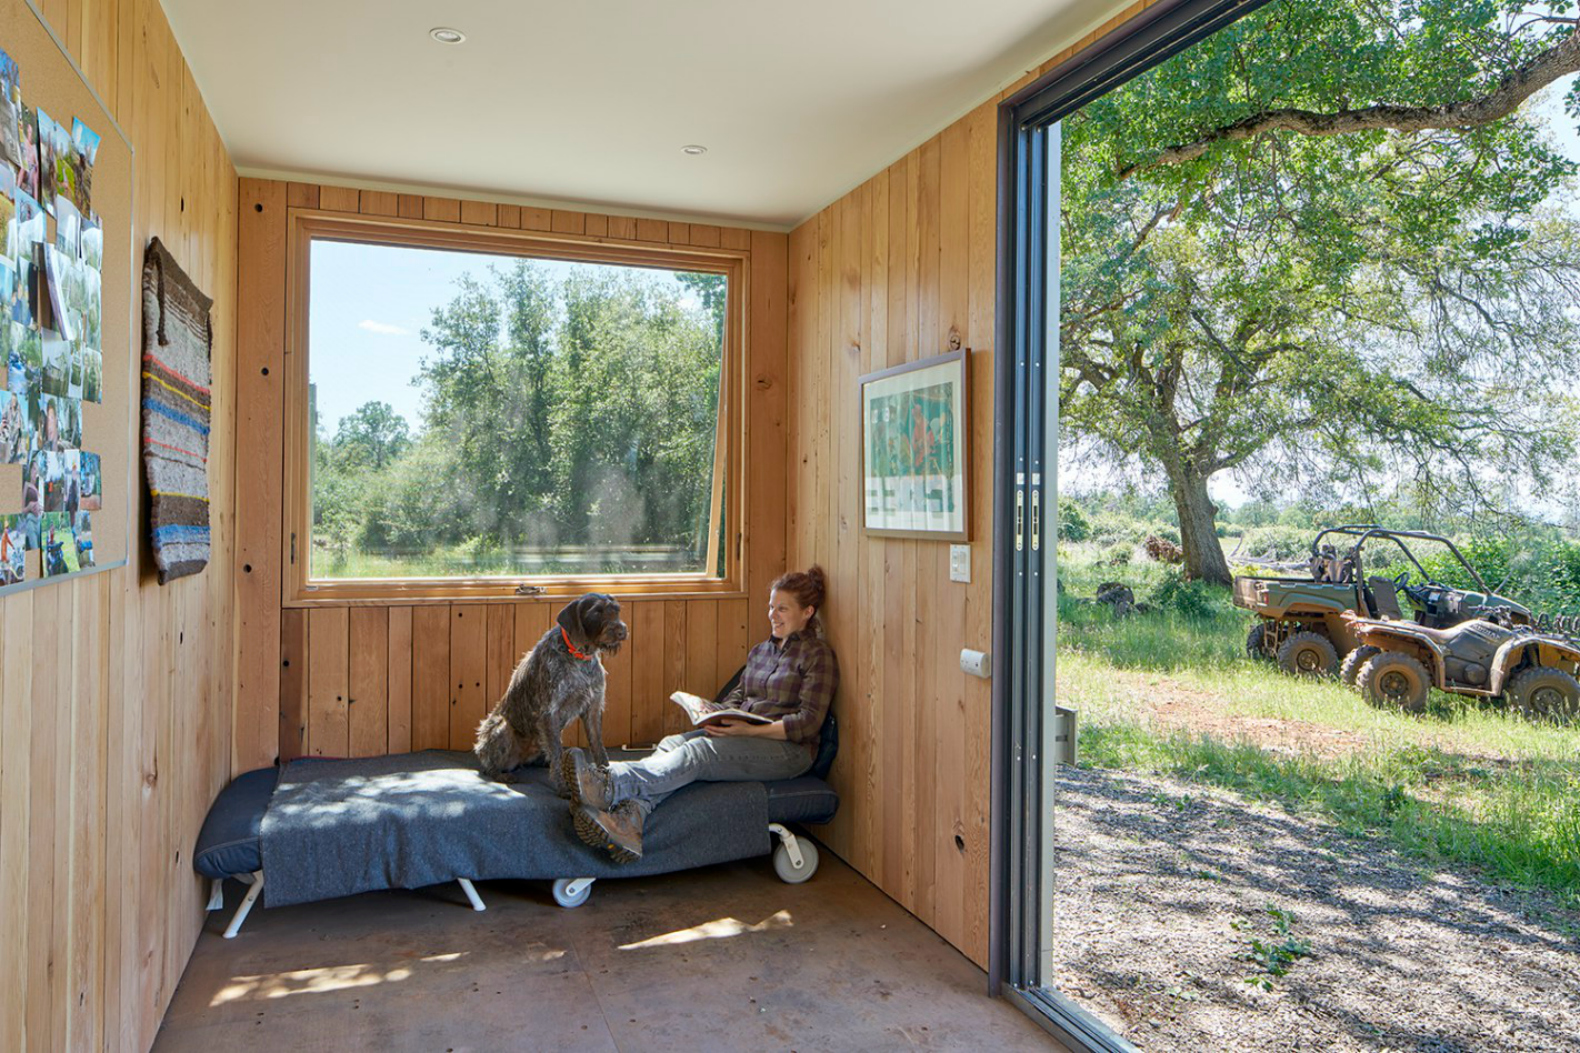 offgrid shipping container cabin has a warm wooden interior  - yamamar design container cabin shipping container architecture shippingcontainer home green design